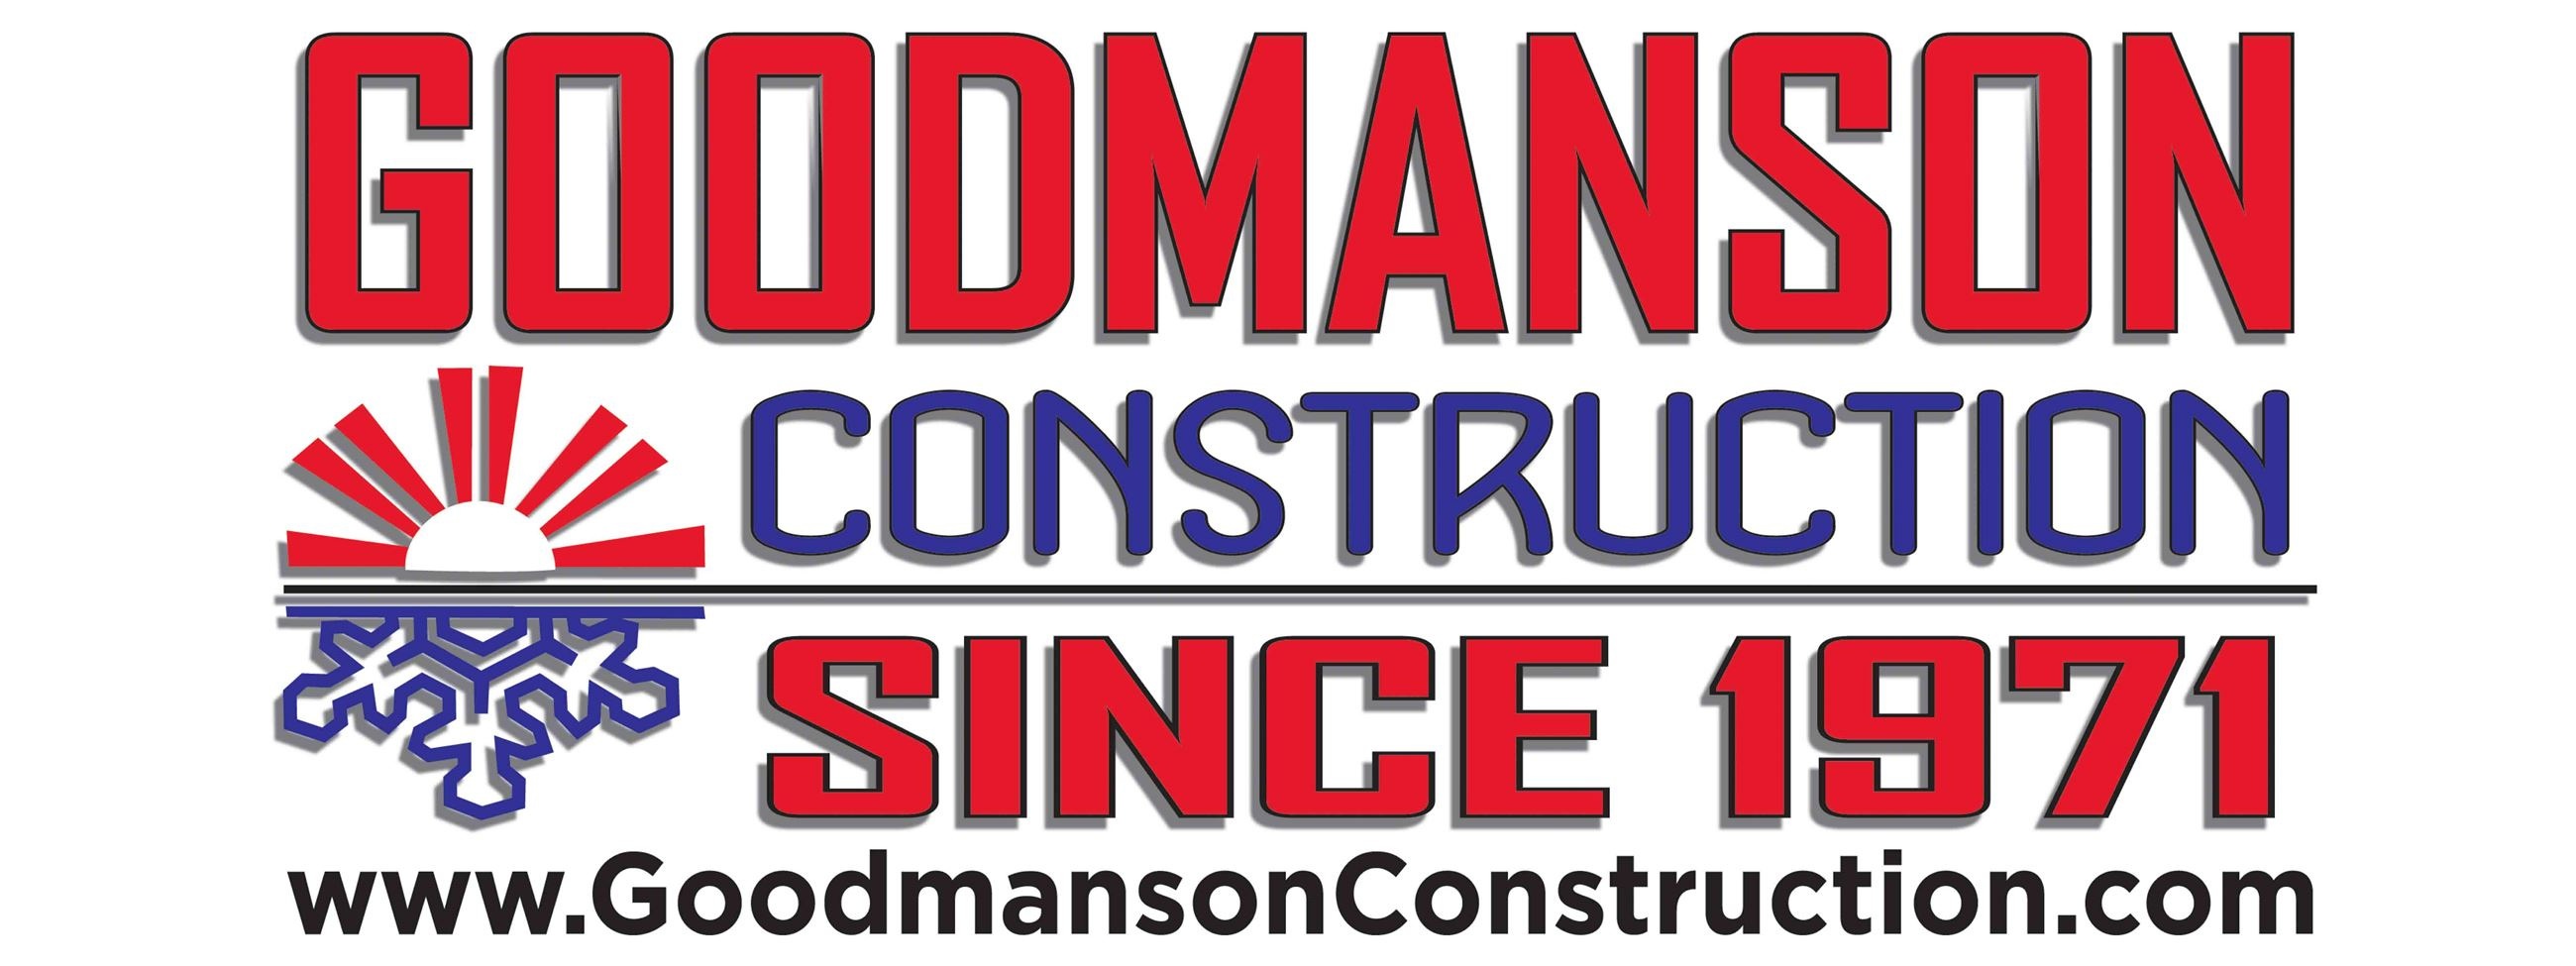 Goodmanson Construction